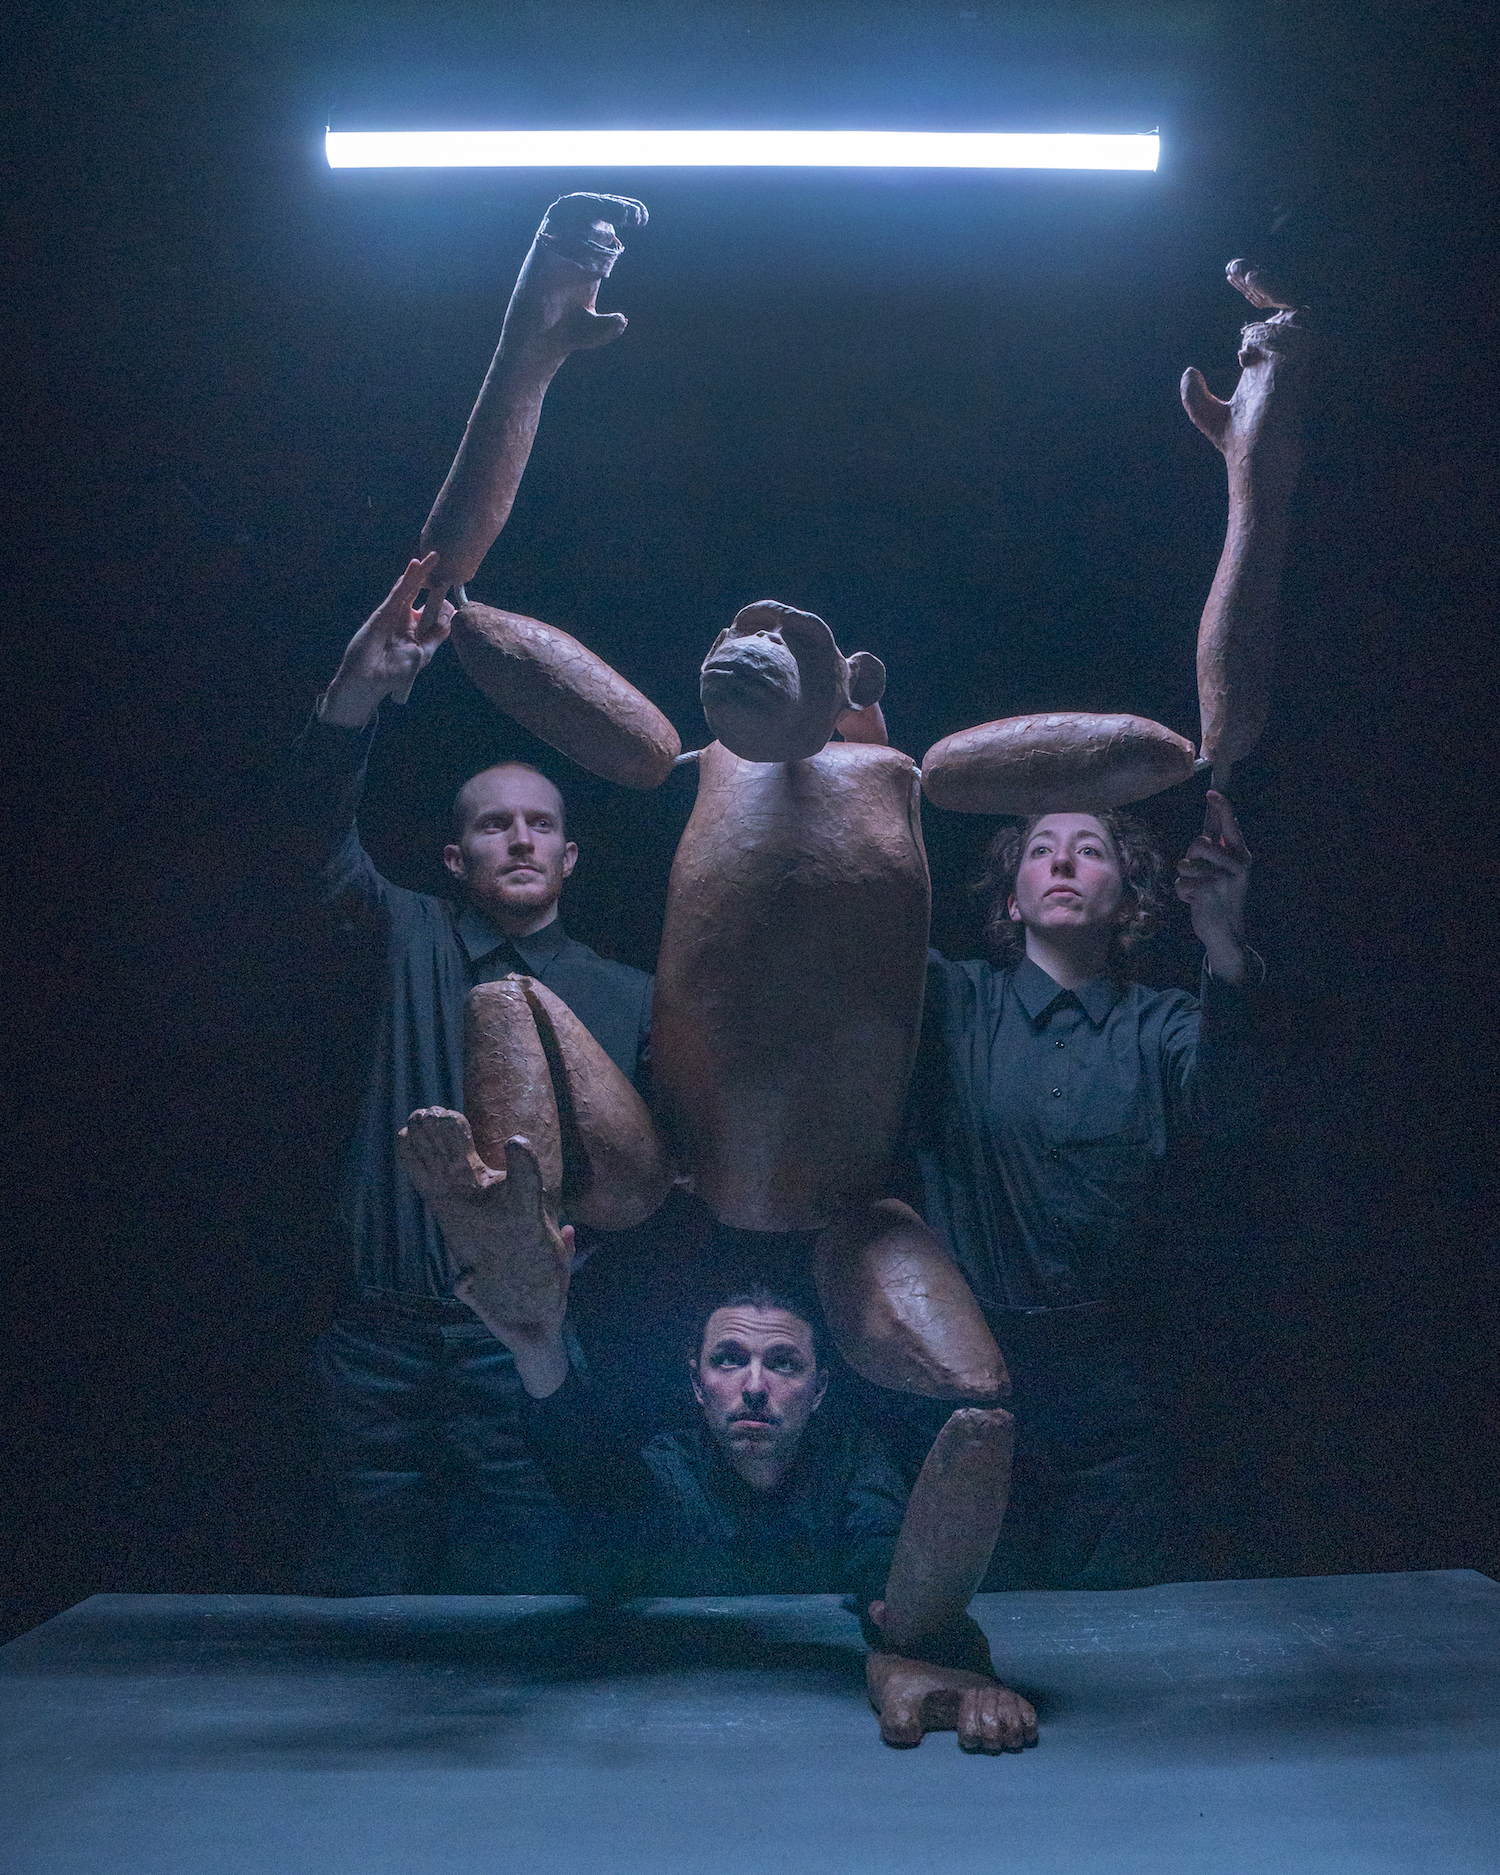 Three puppeteers are looking upwards and holding a puppet shaped like a chimpanzee. There is a tube light above them illuminating the scene.